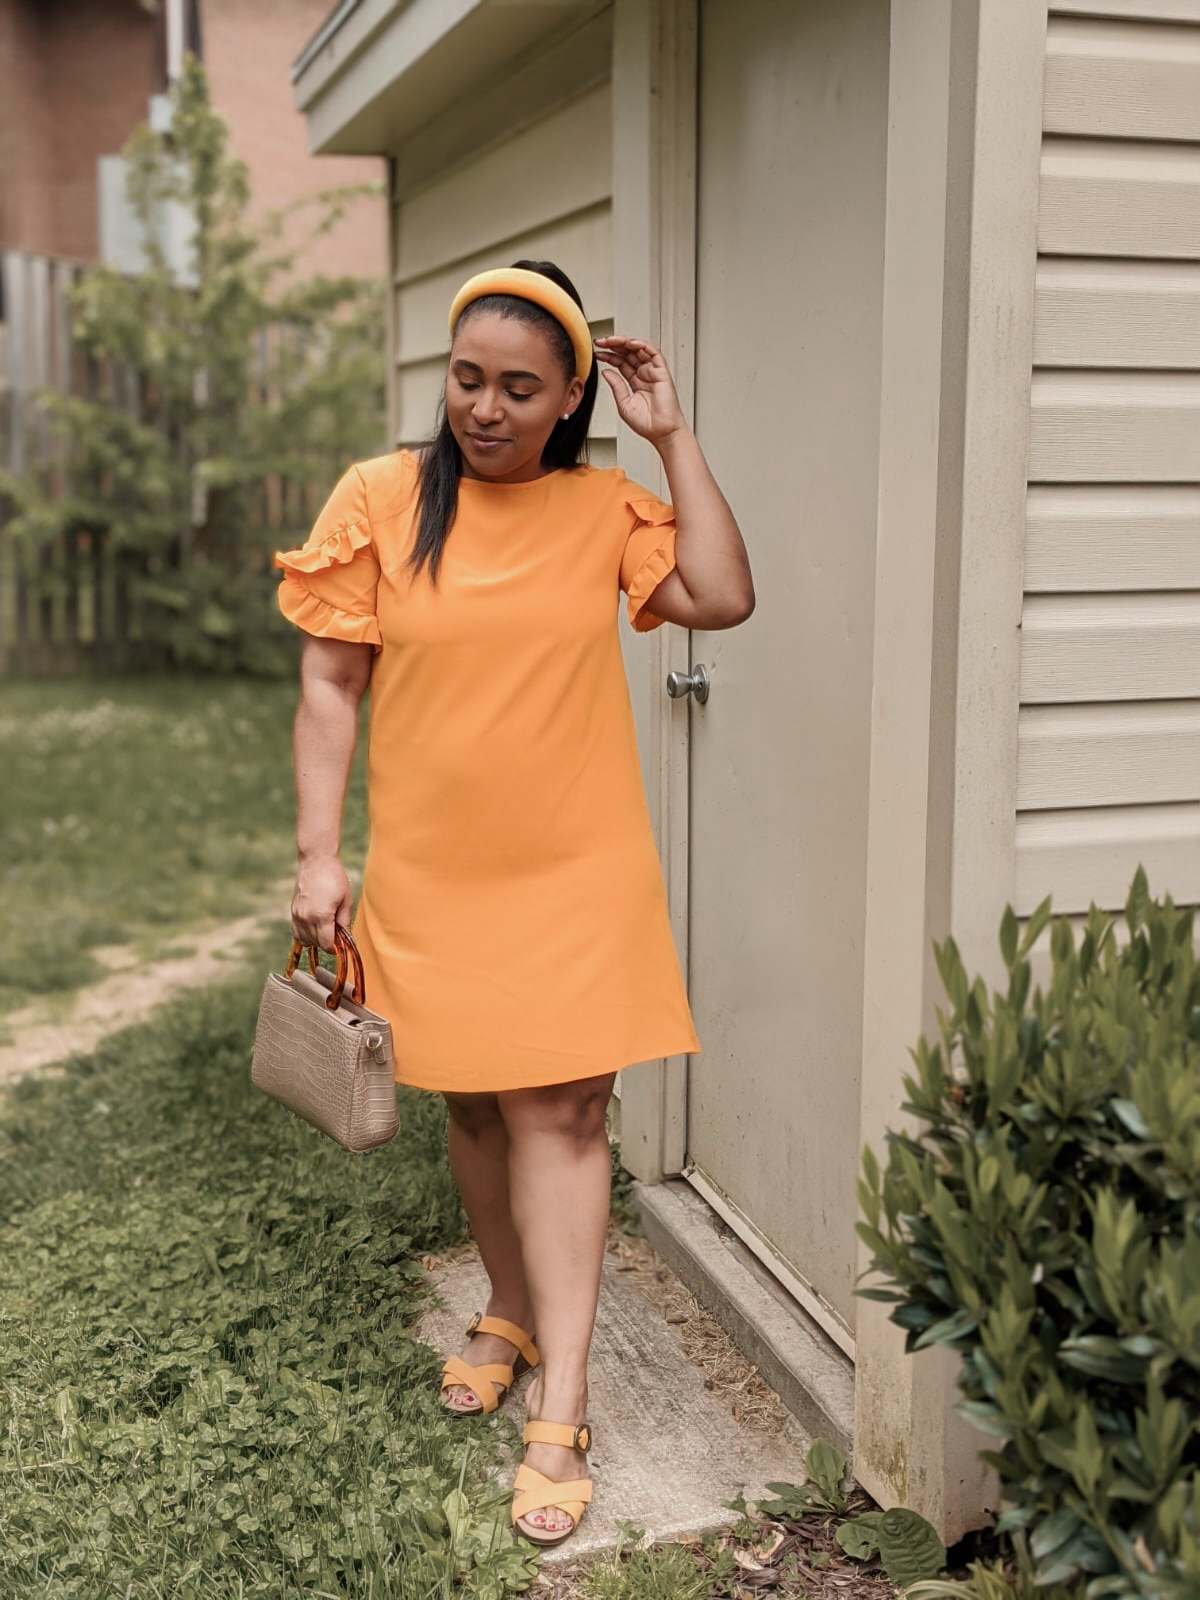 shein, shein reviews, shein dresses, ruffle dress, summer dresses, pattys kloset, mustard dresses